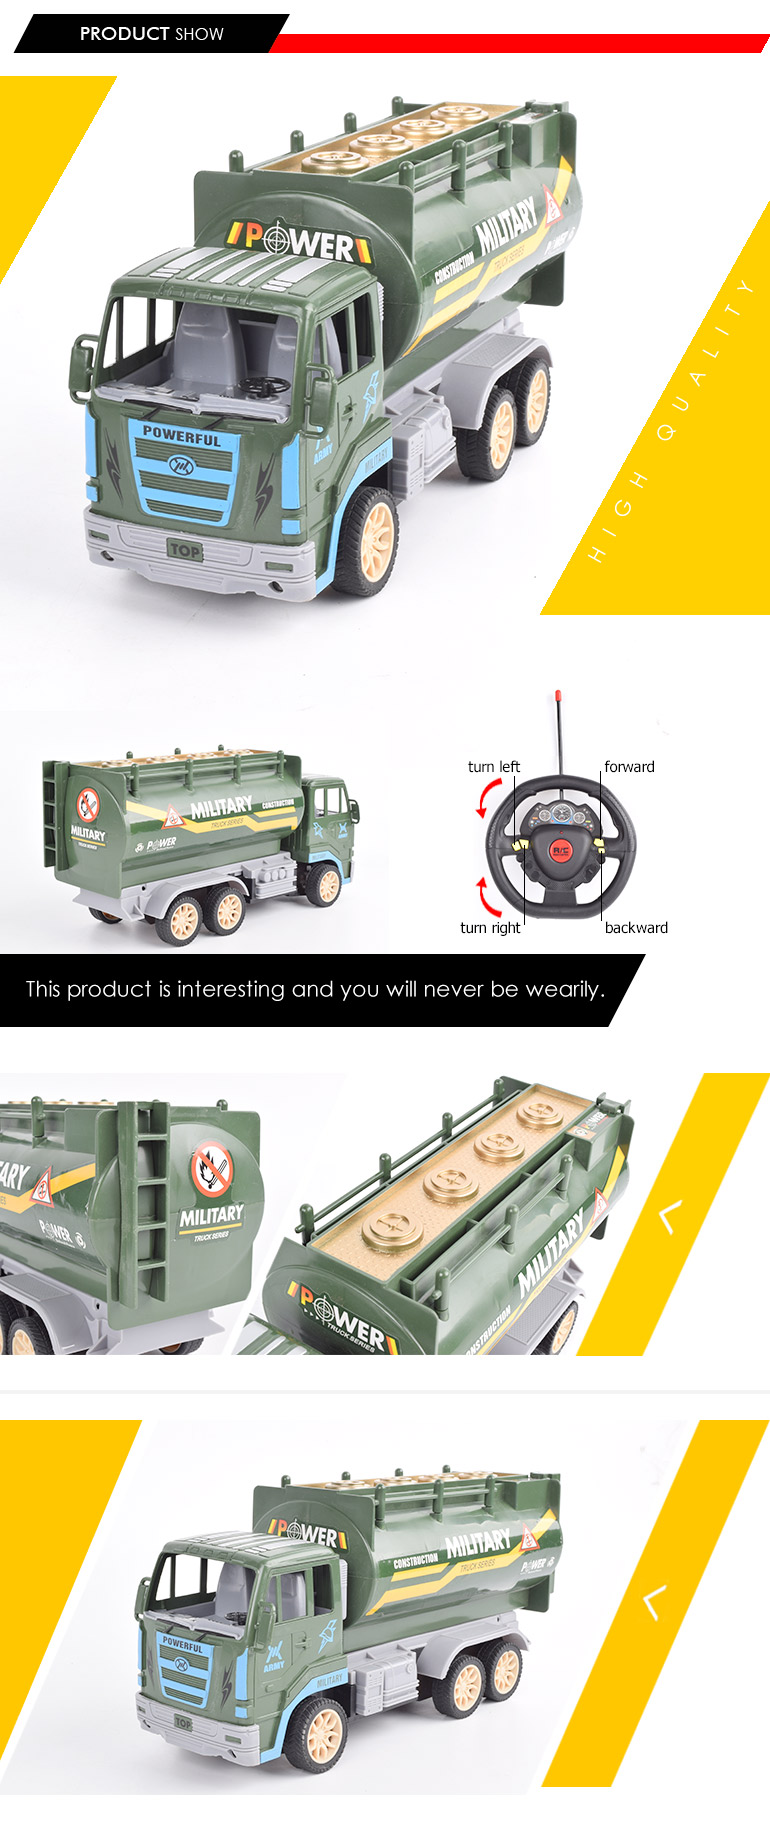 steering wheel remote control truck model military toys with gravity sensor controller